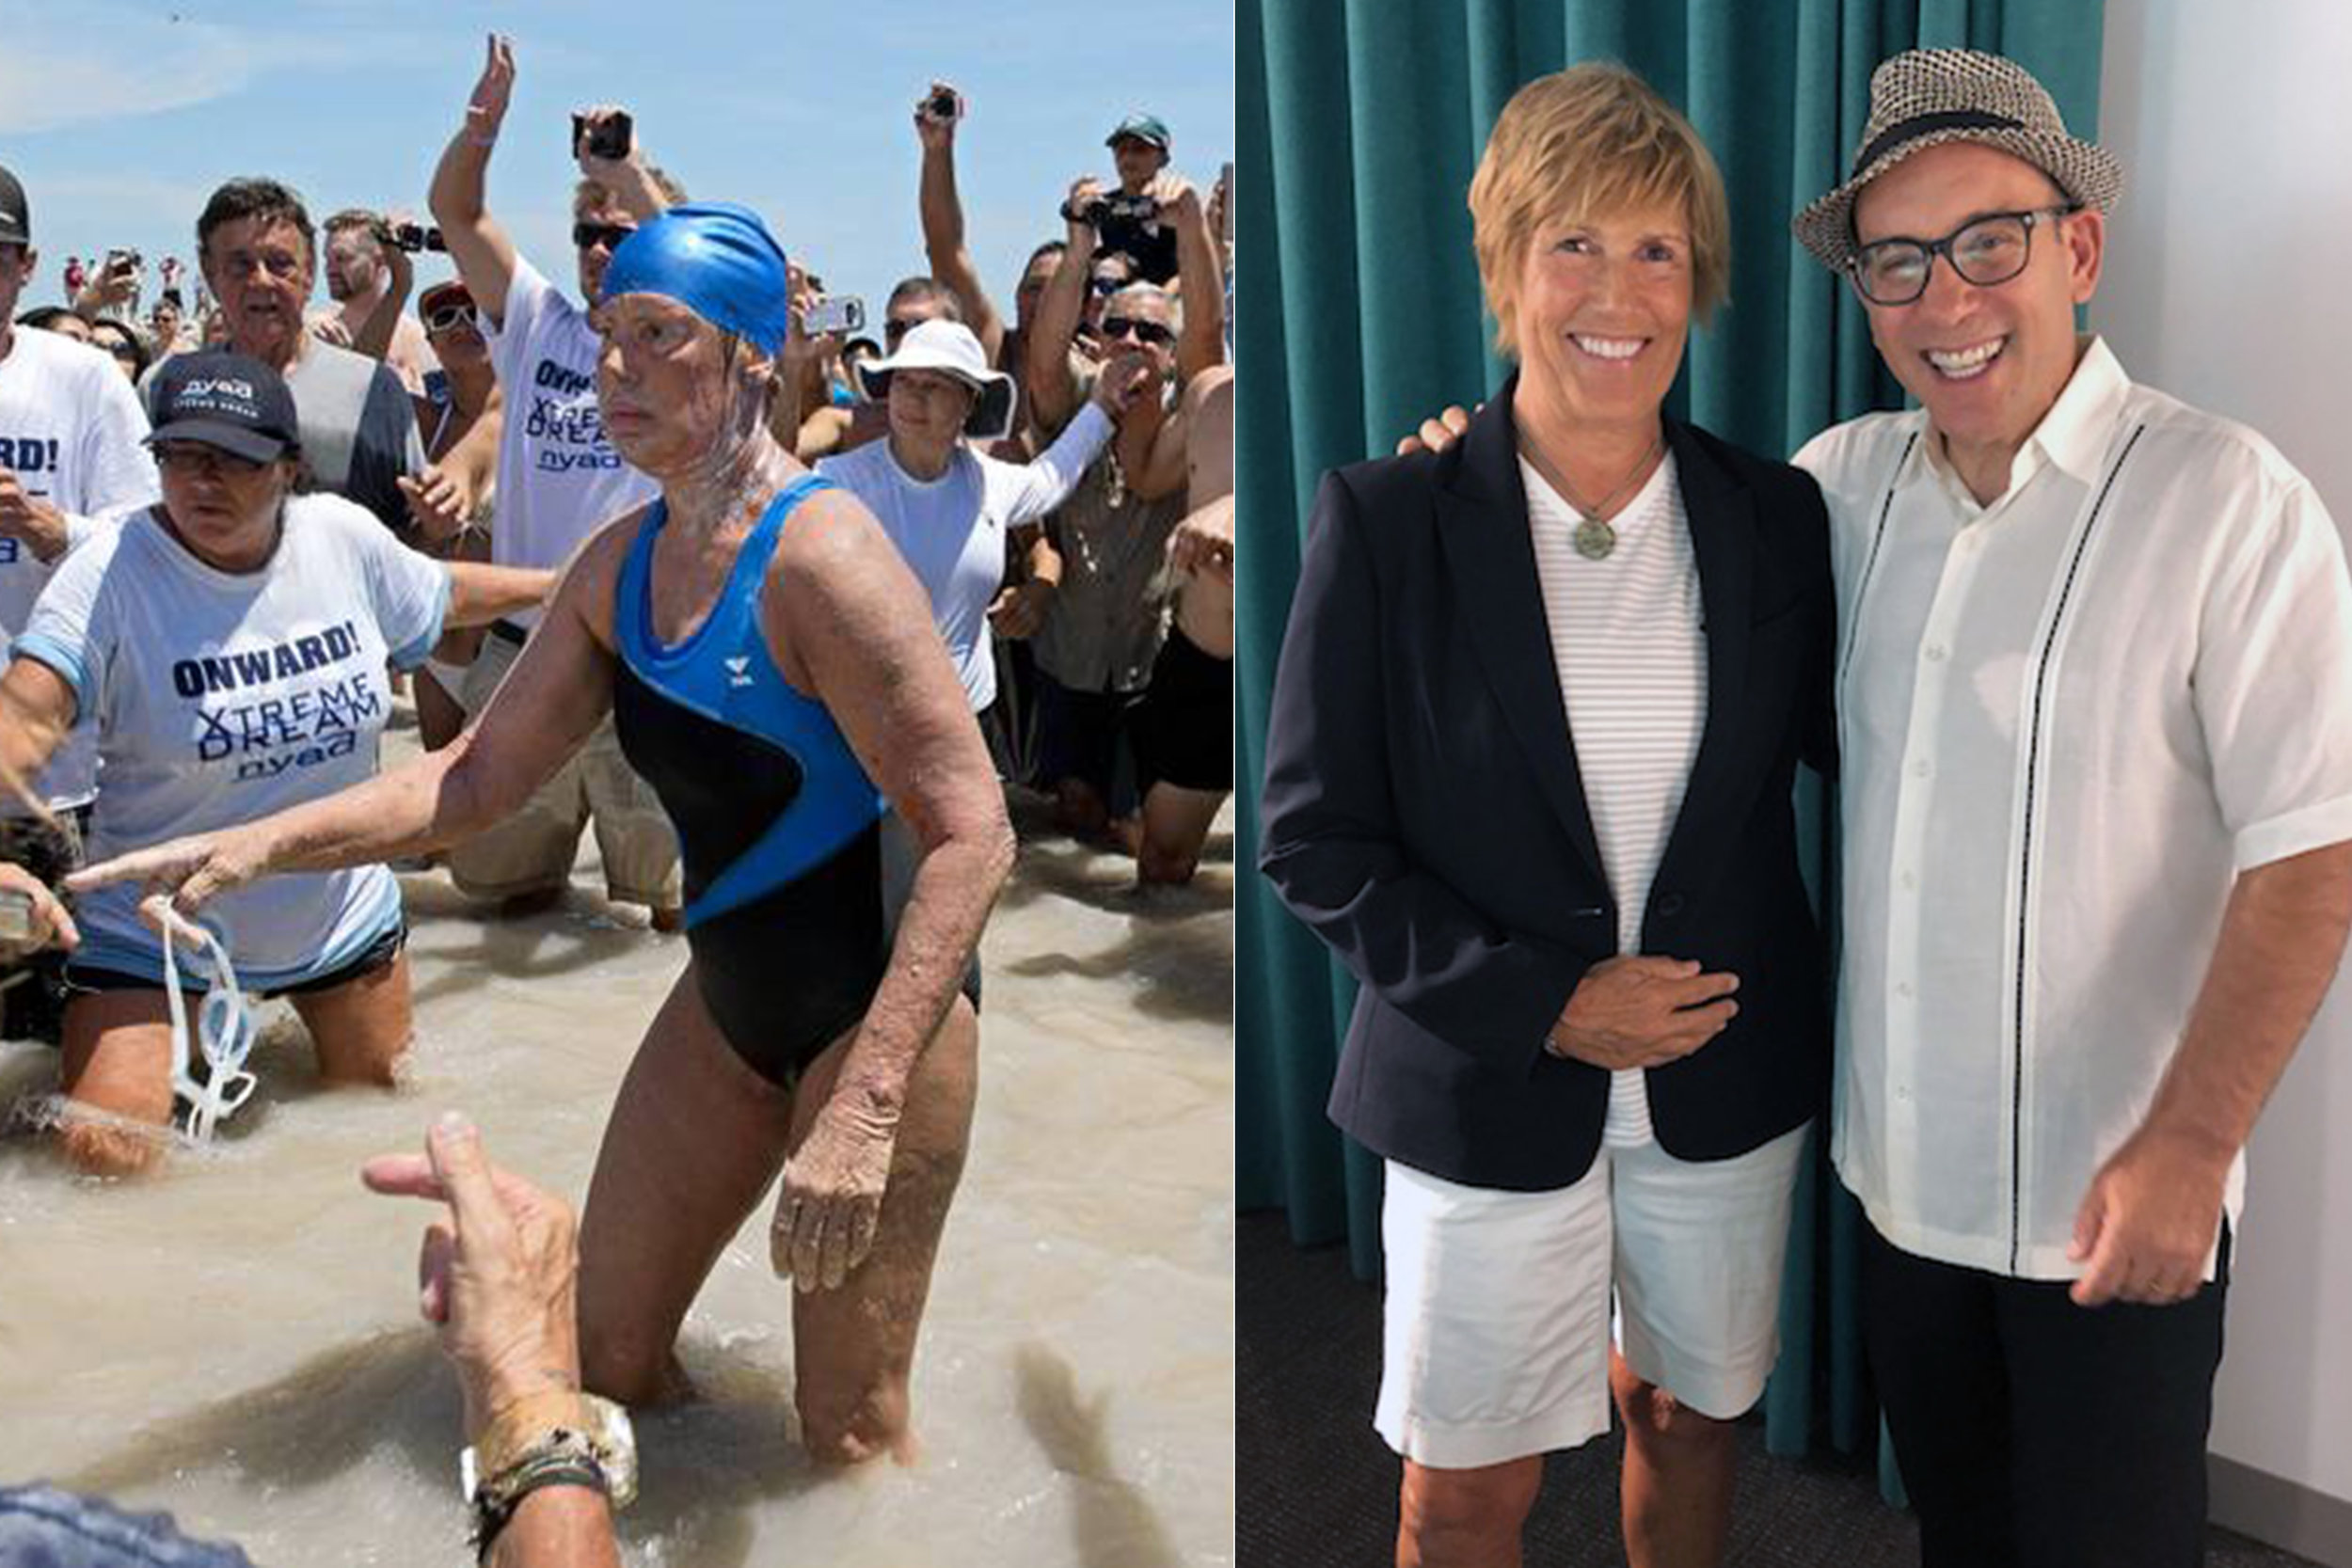 Diana Nyad - On Finding A Way